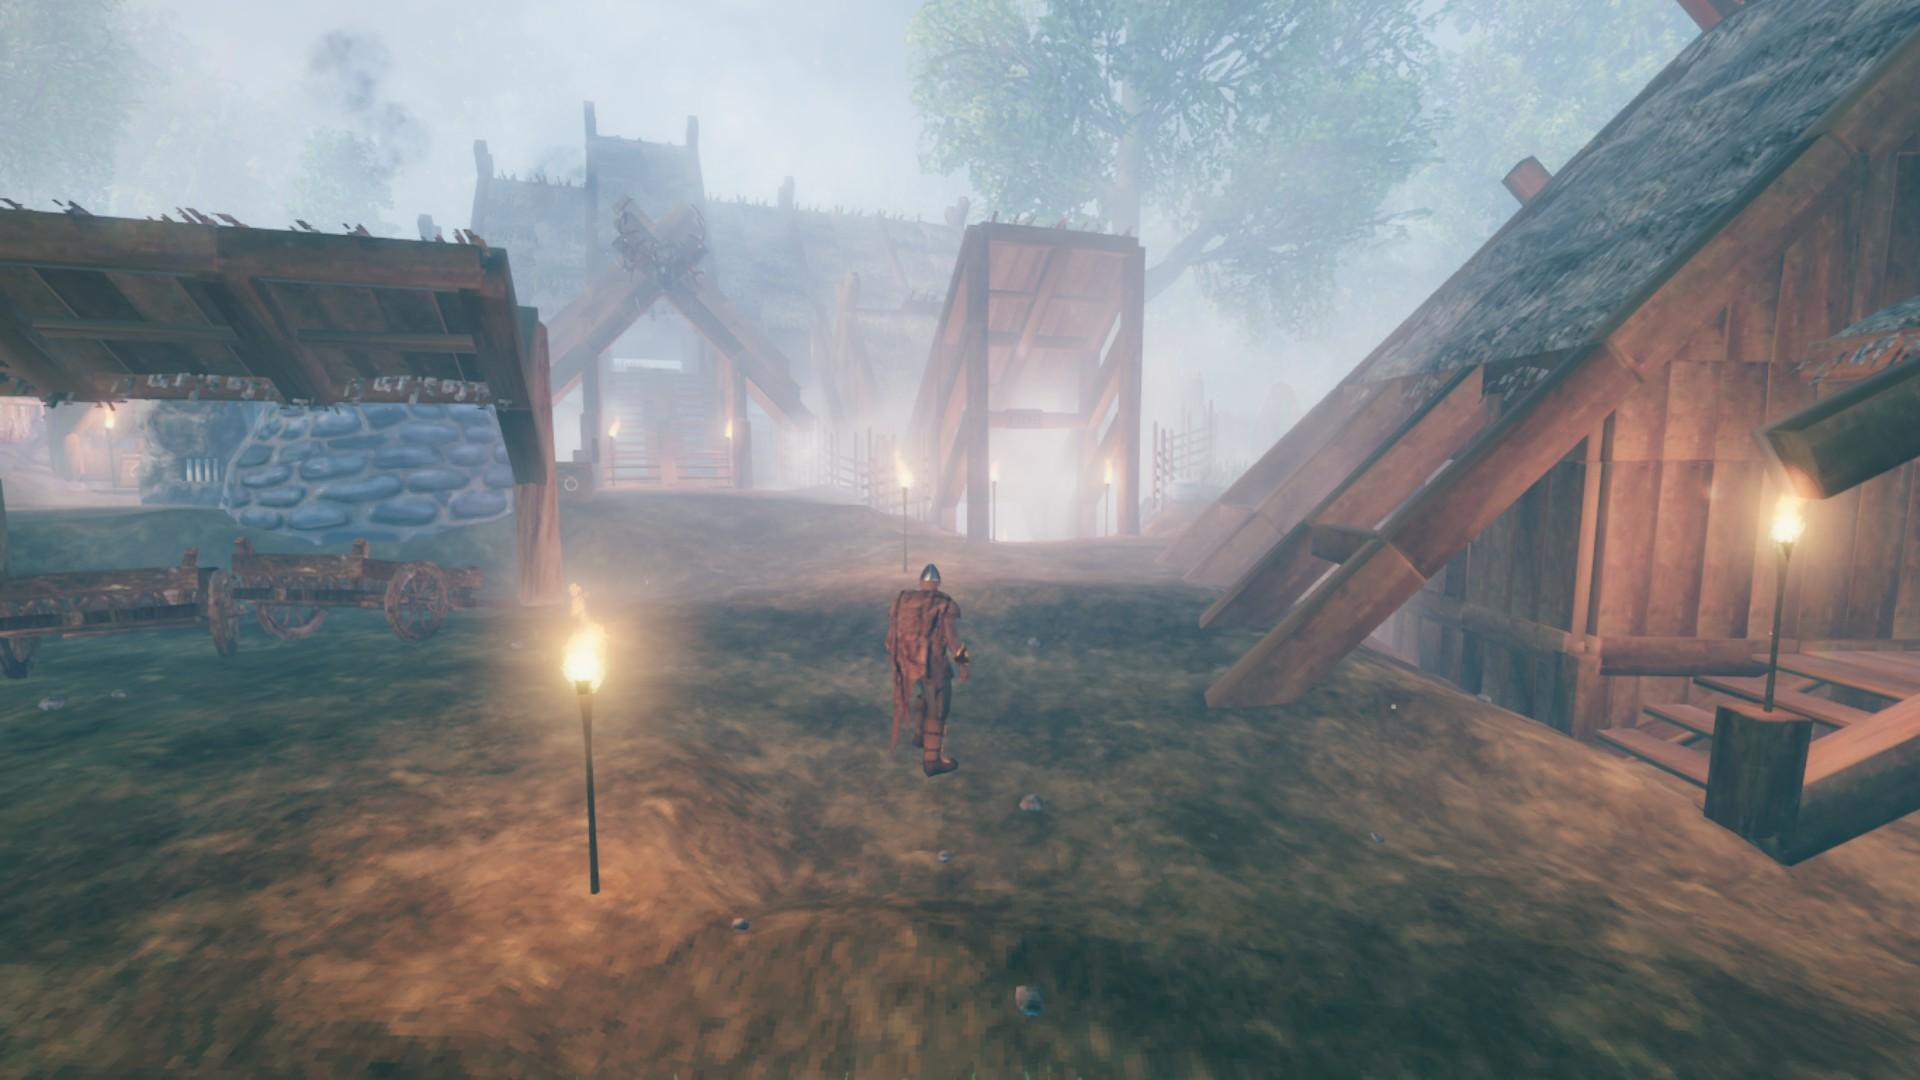 A foggy morning in the realm of Valheim